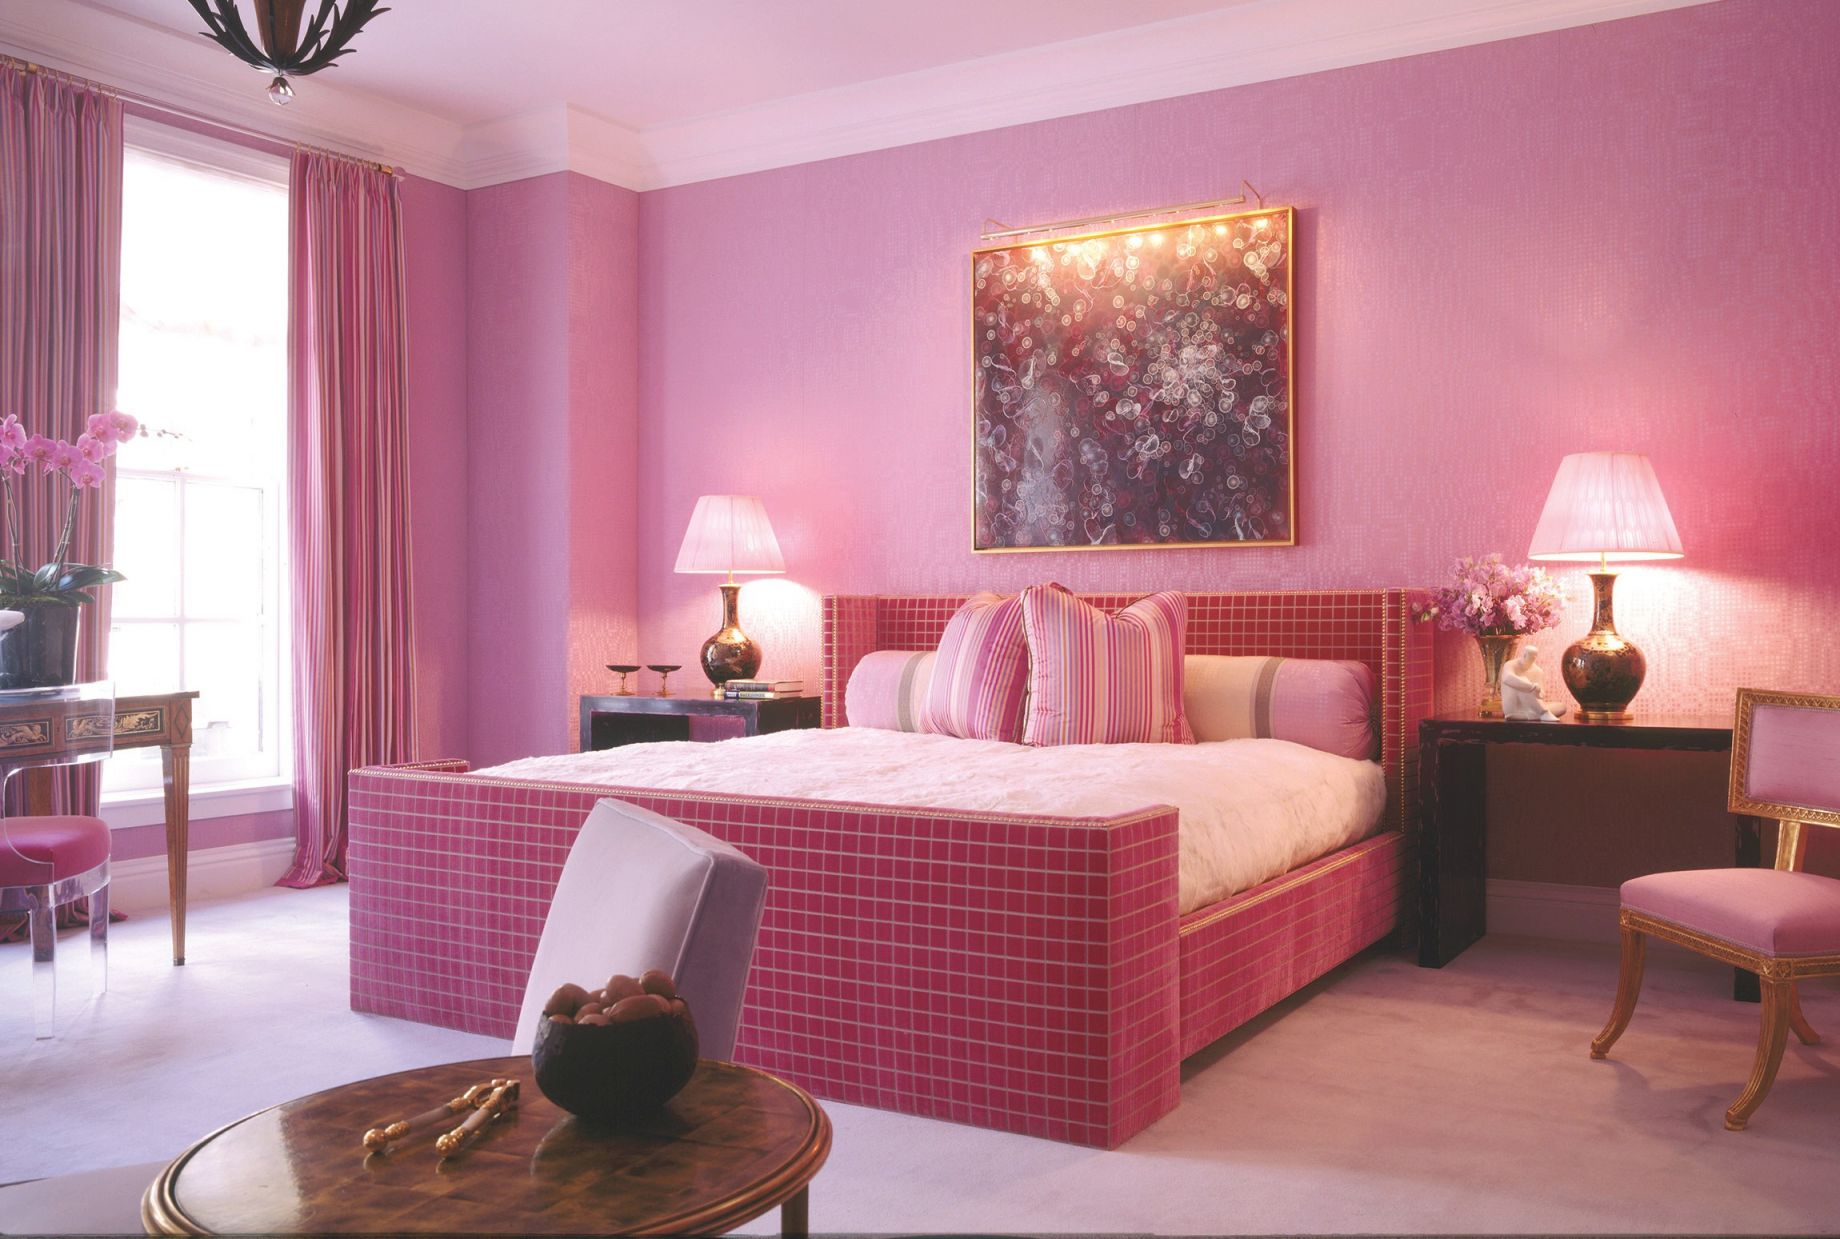 7 Must-Follow Steps For Decorating With Pink | Architectural with Feminine Bedroom Decorating Ideas